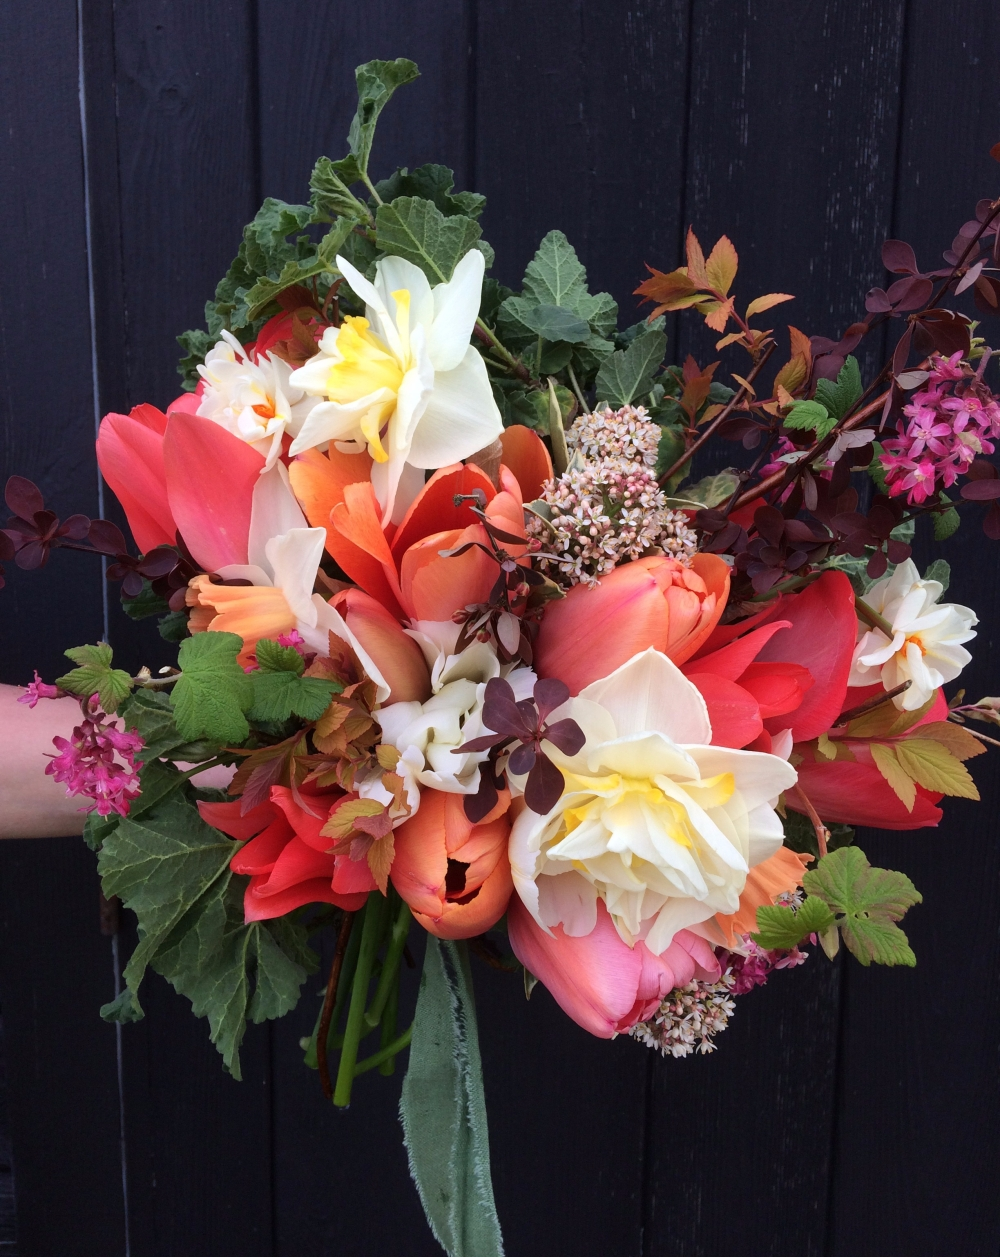 Exciting Fresh Spring Seasonal Flowers, 100% British 100% Swan Cottage Flowers (Spring Wedding Flowers, Bridal Bouquet)